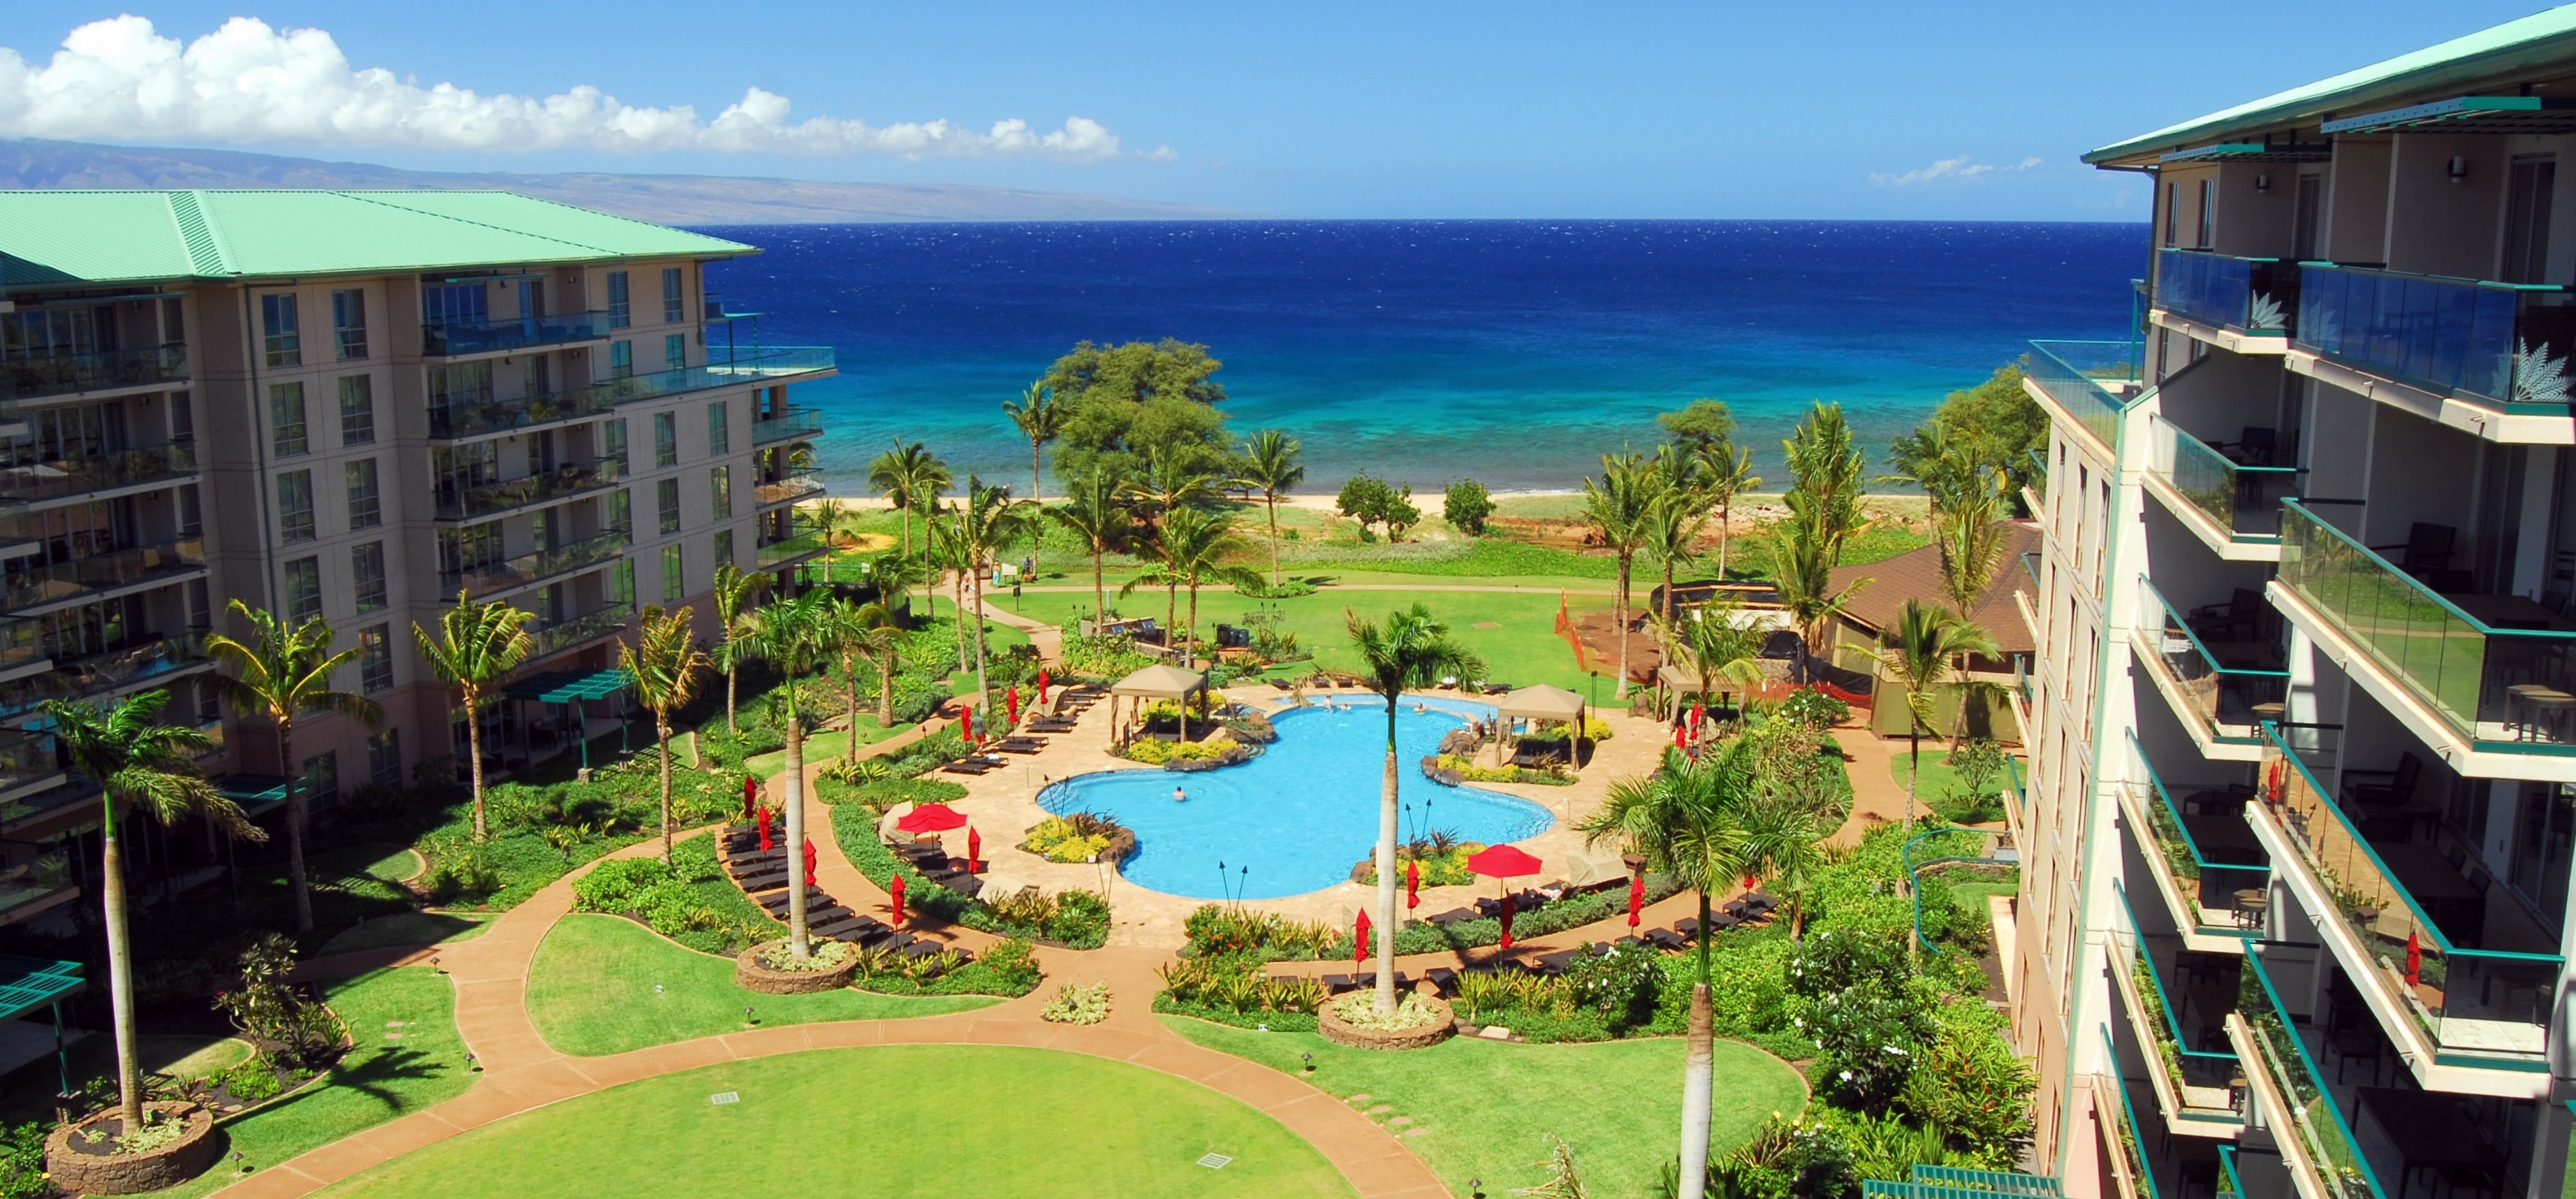 Kaanapali Beach Rentals  - Resort Grounds w/Pool